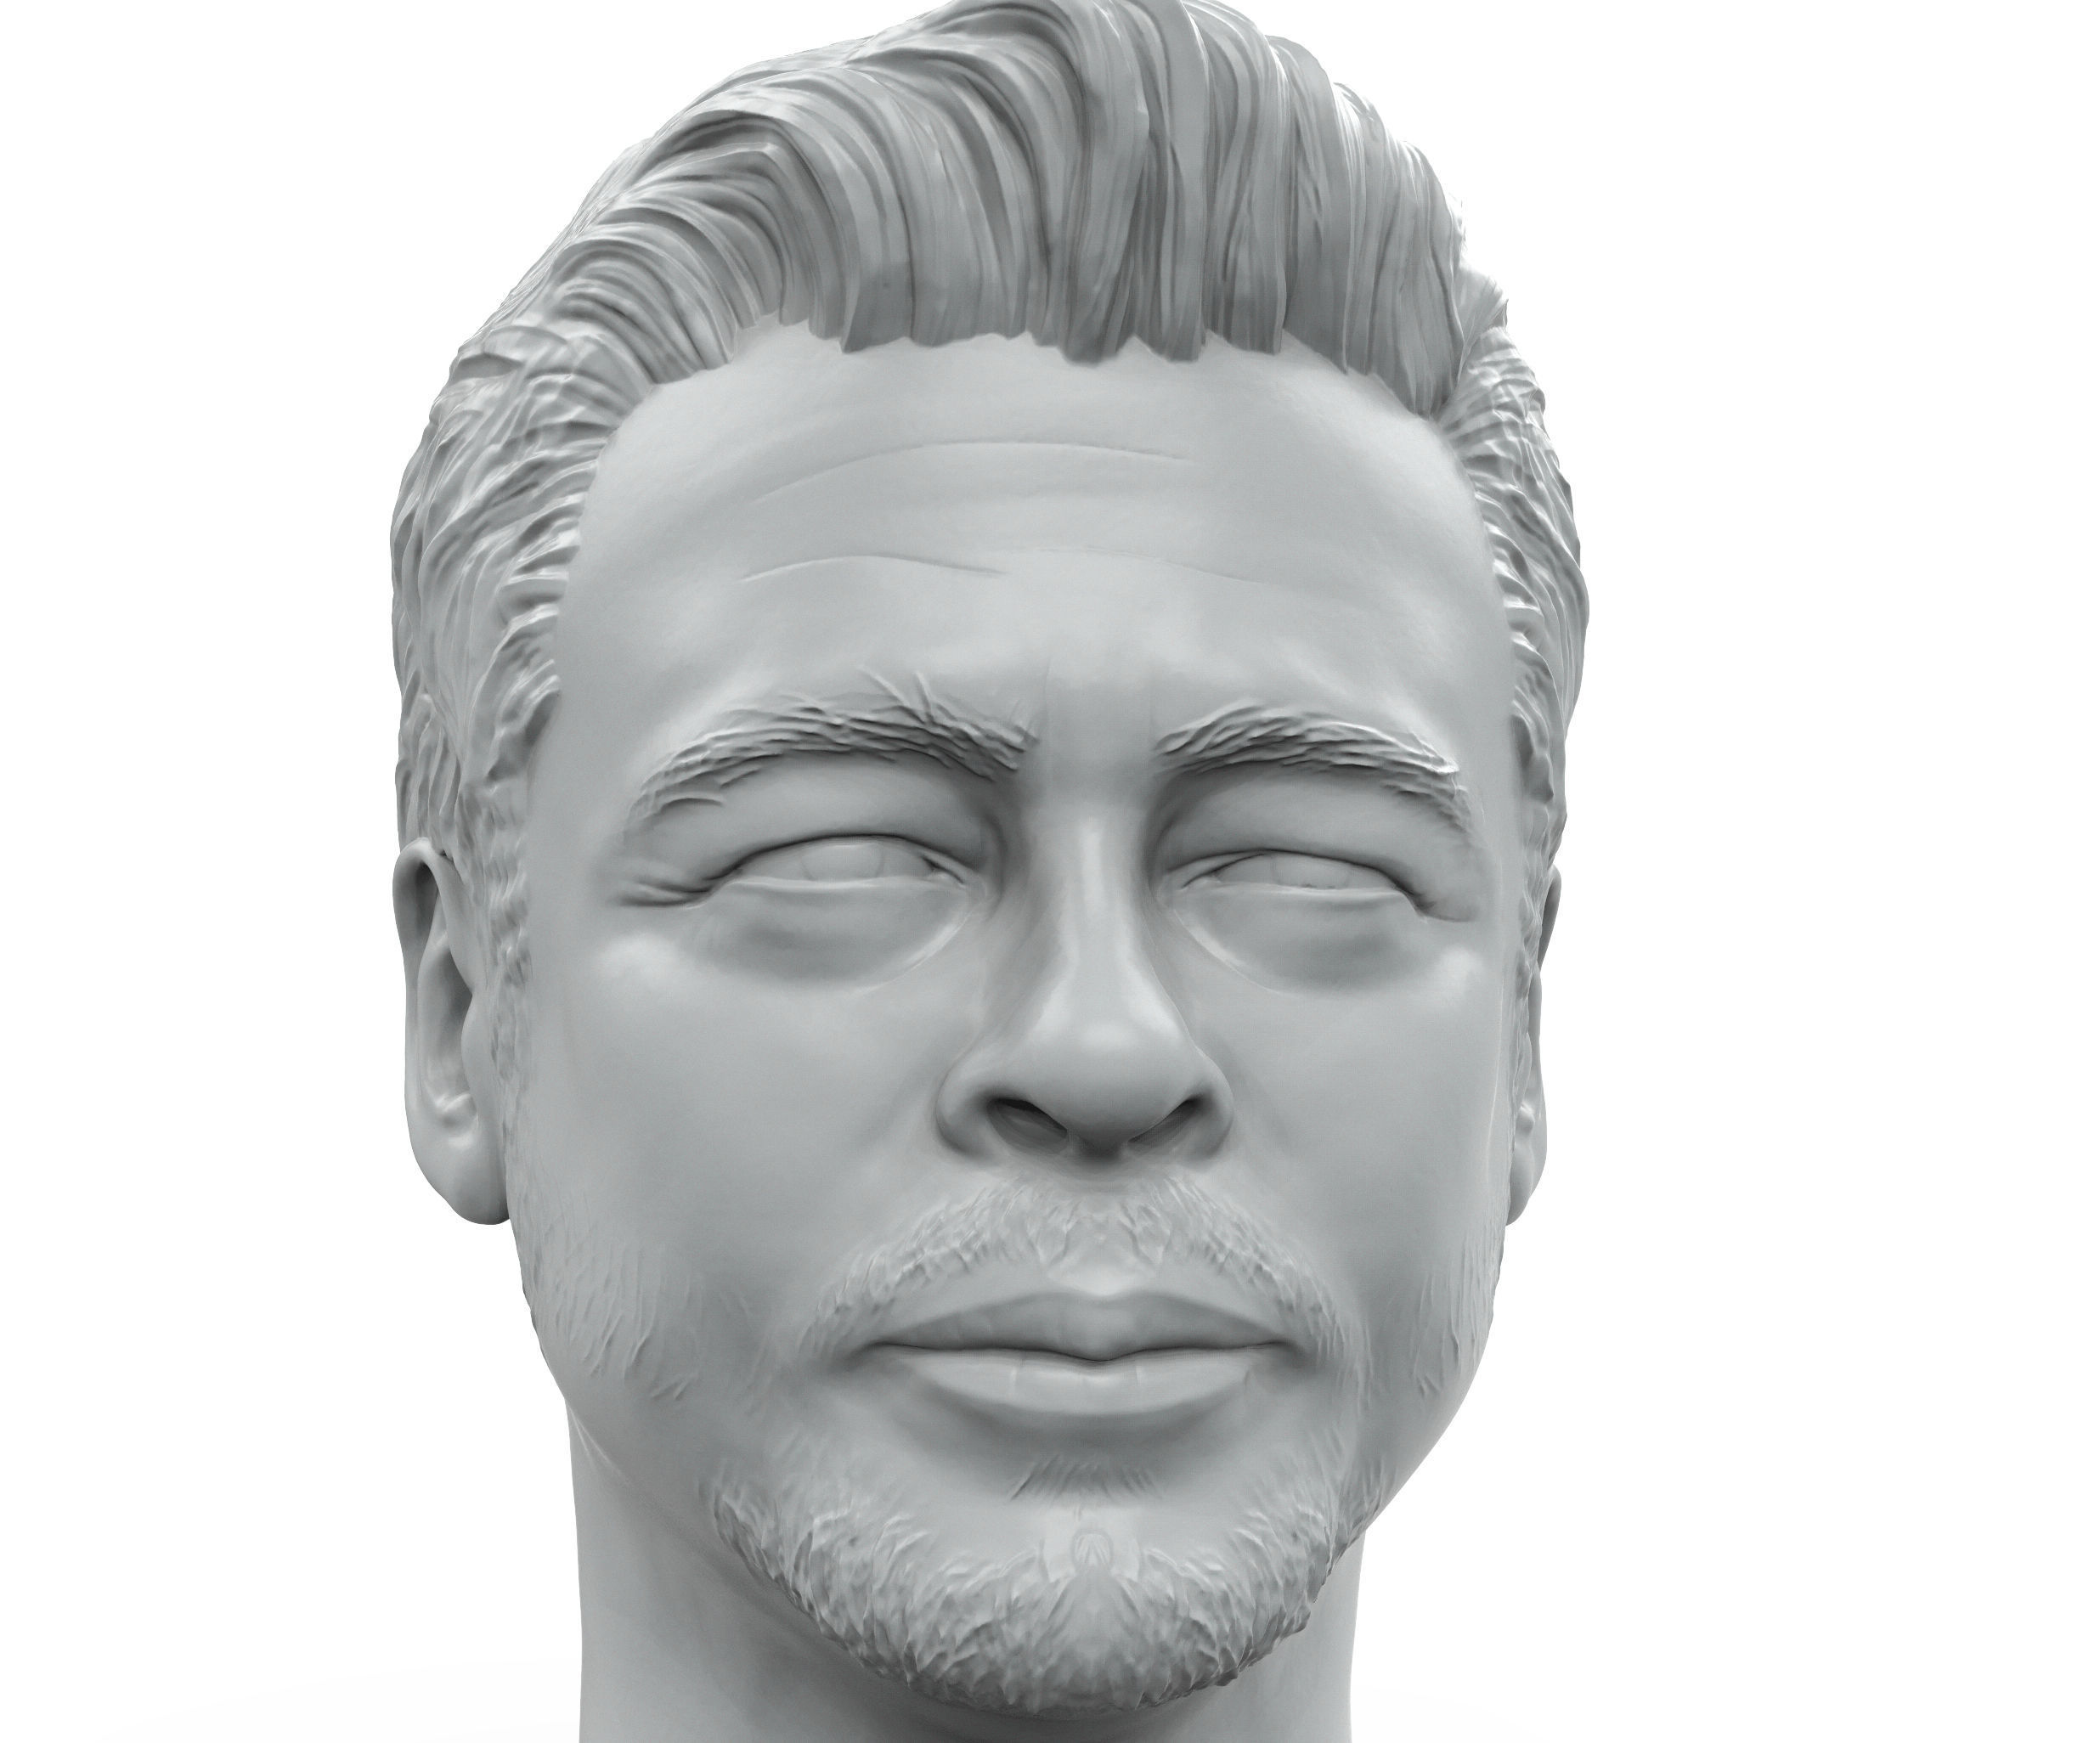 Benicio Del Toro 3D printable portrait sculpture